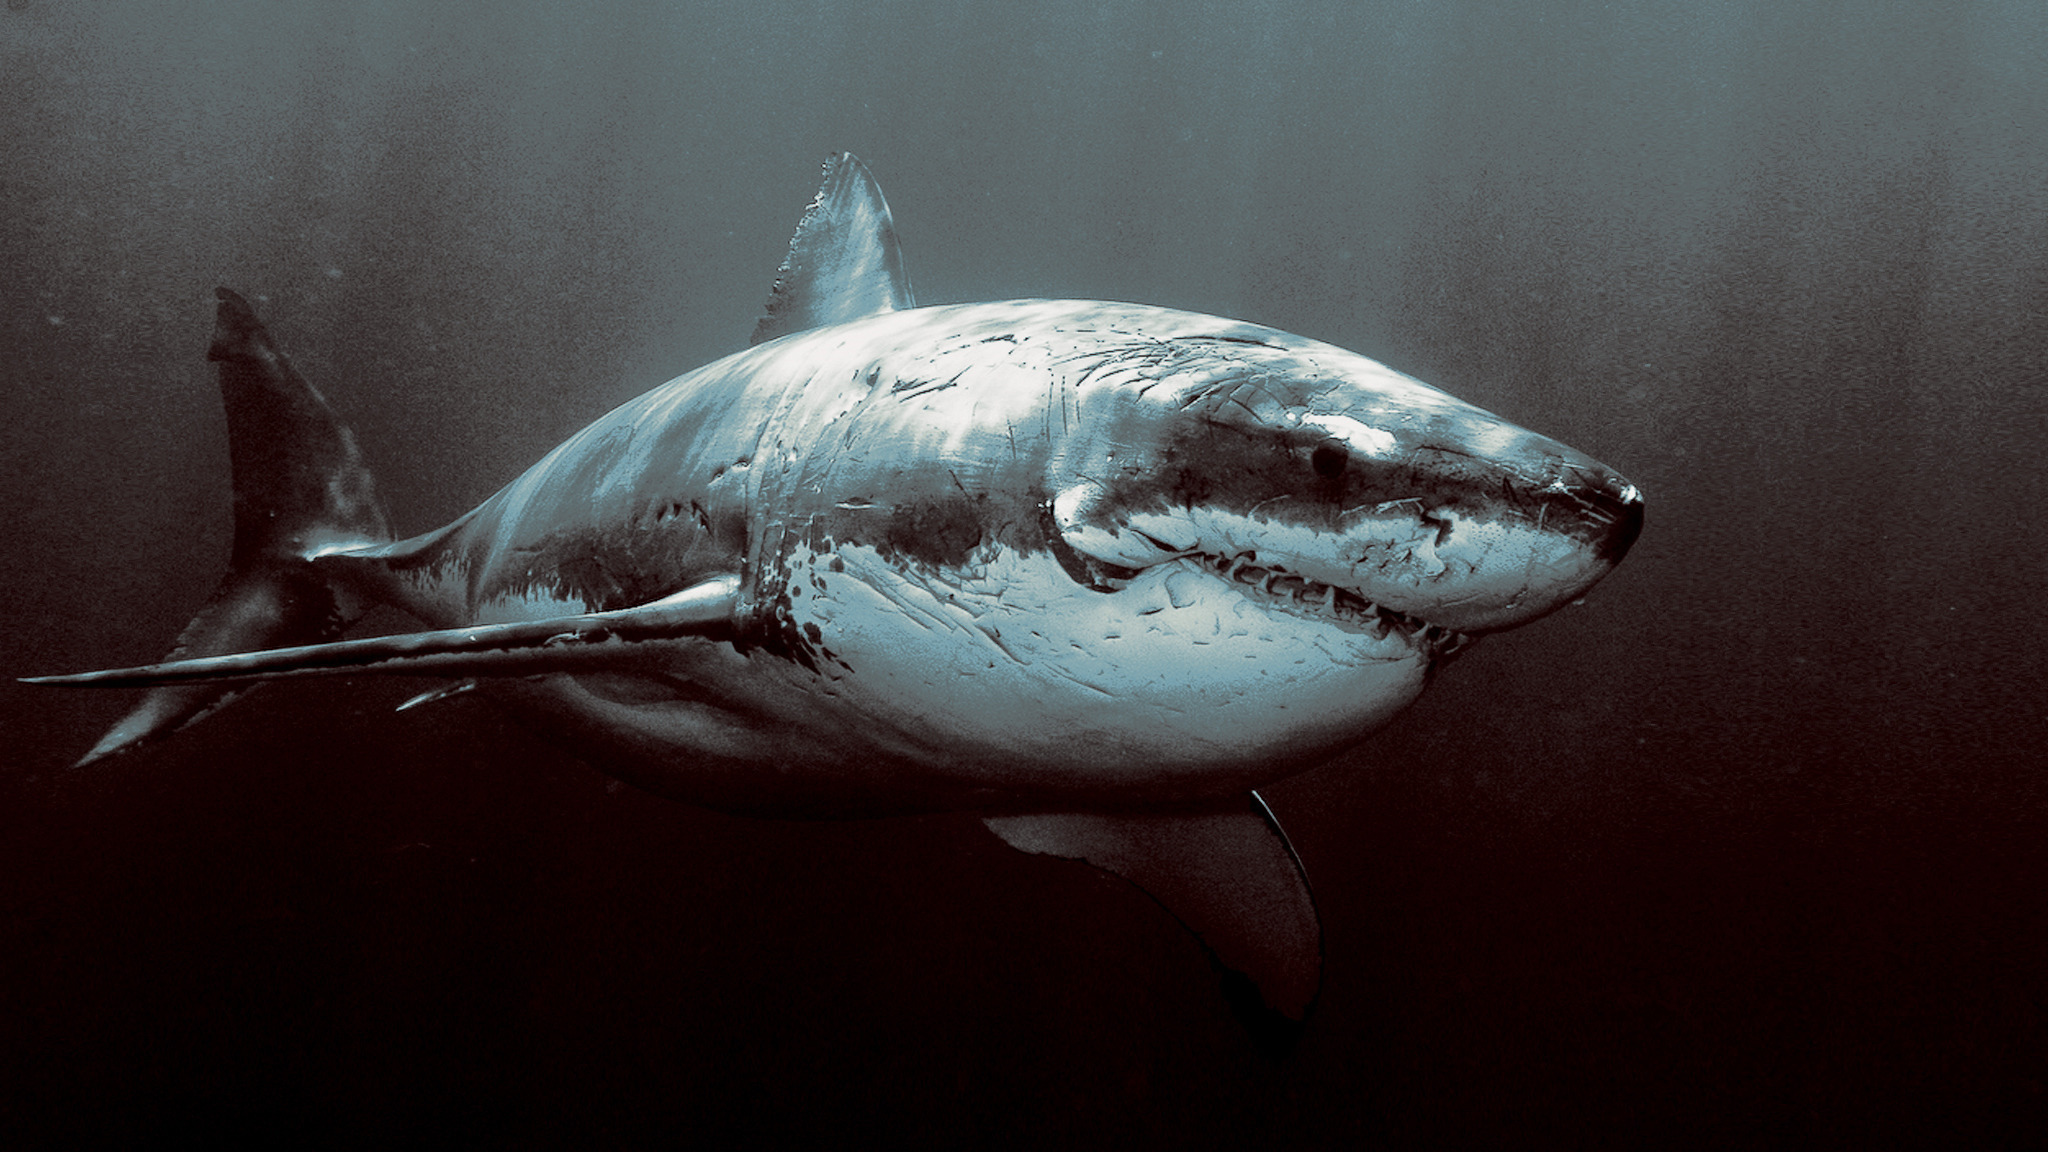 14723 download wallpaper Animals, Sharks, Fishes screensavers and pictures for free